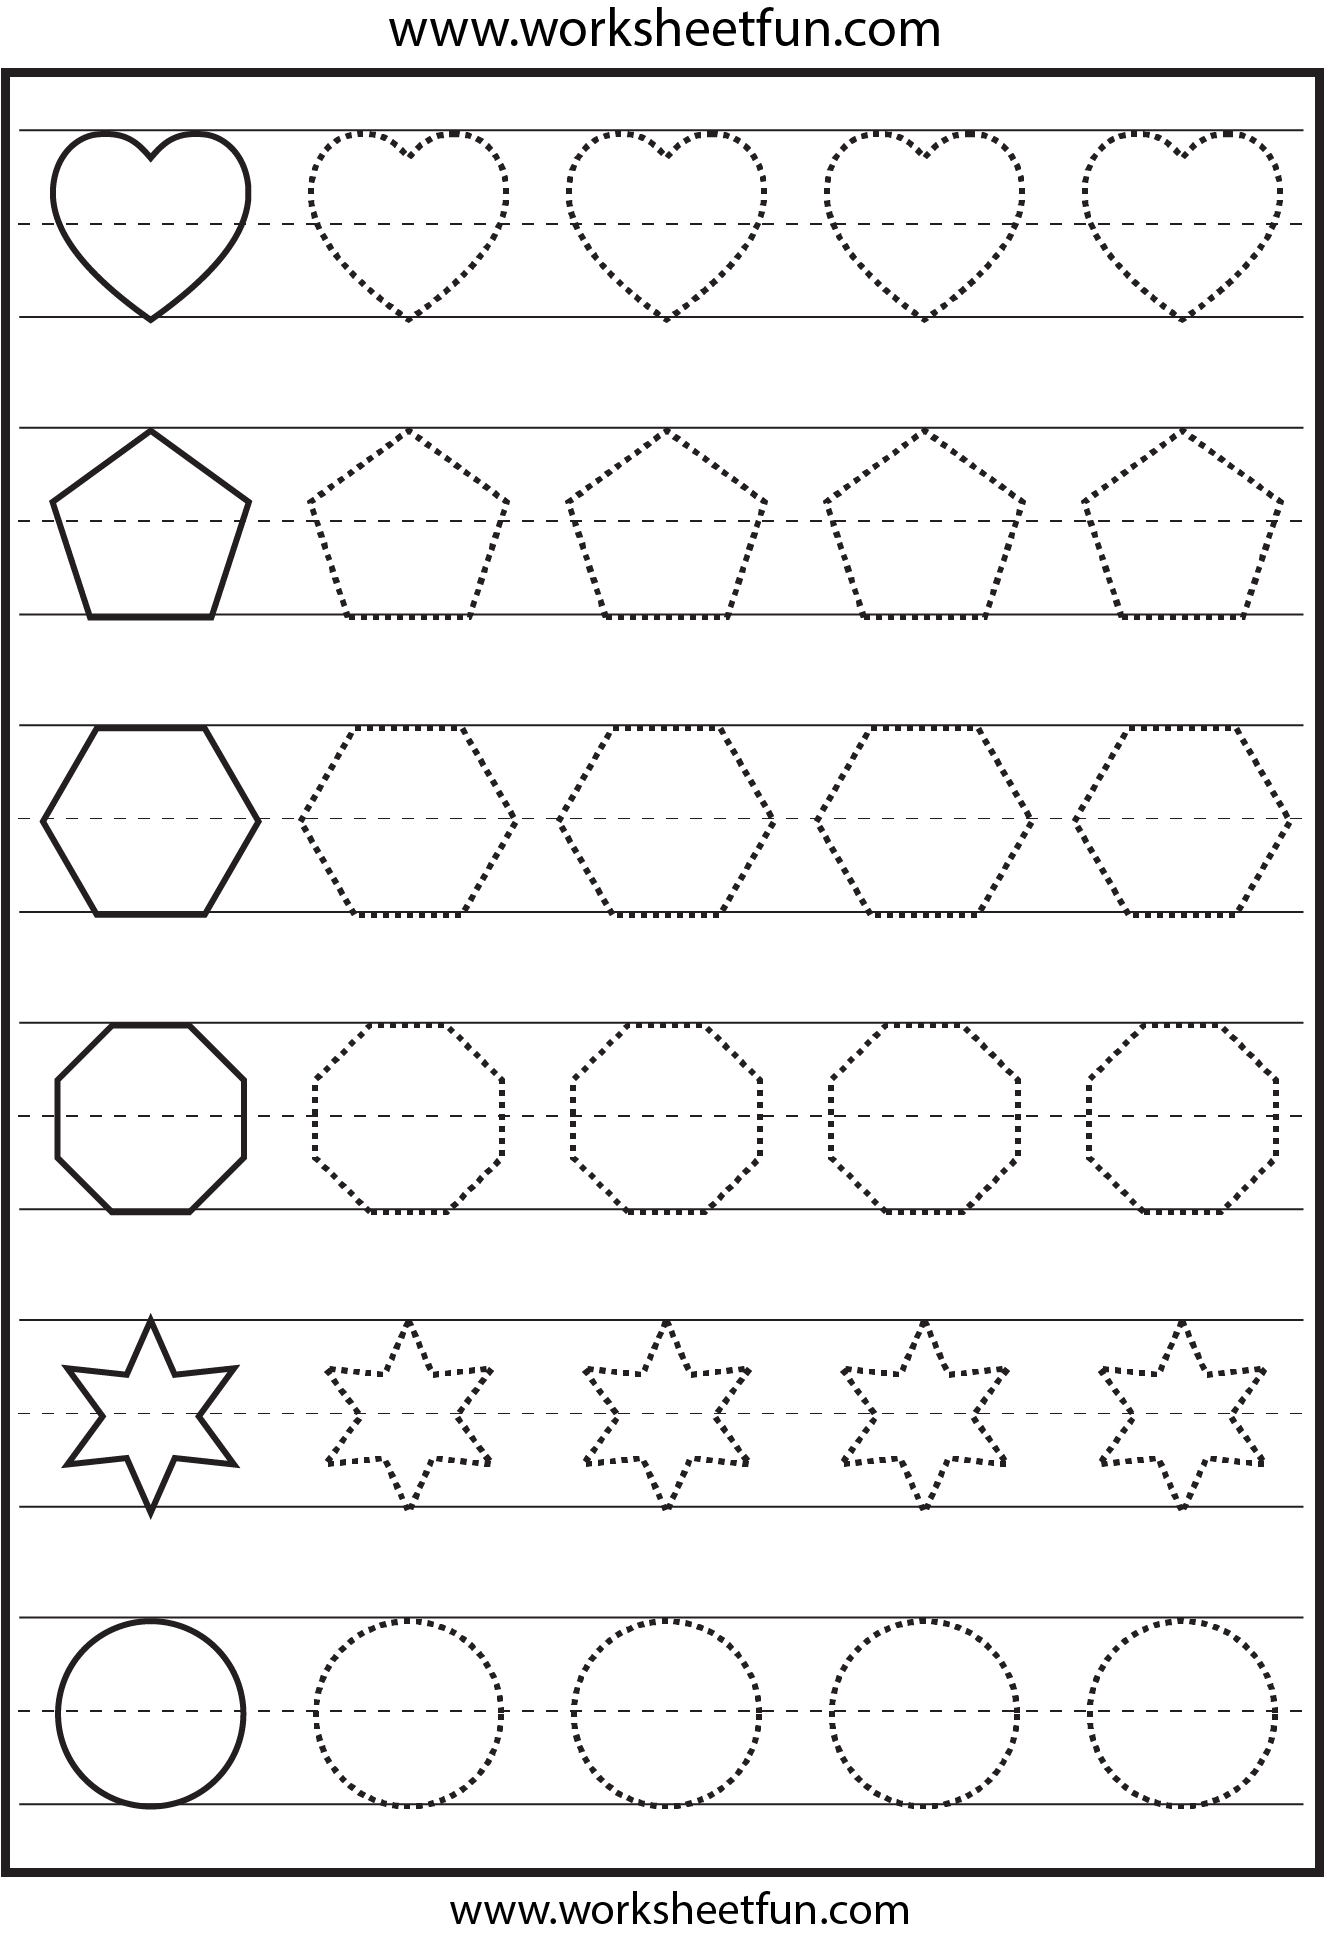 pin by janet morris on printables to laminate for shoeboxes preschool worksheets tracing. Black Bedroom Furniture Sets. Home Design Ideas